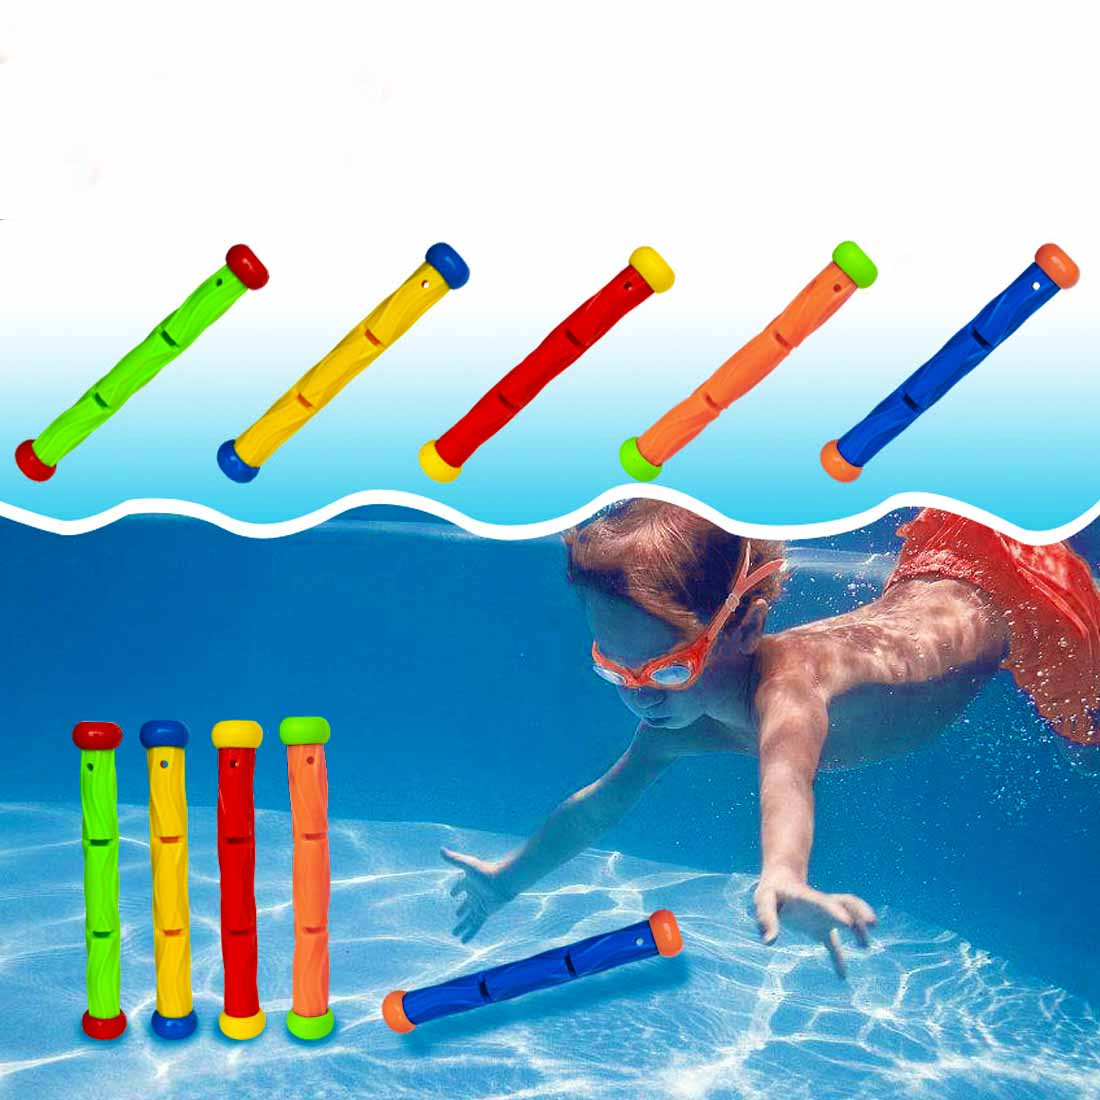 5Pcs/set Funny Kids Children Underwater Sports Swimming Pool Dive Game Stick Toys Diving Stick Toys Swimming Pool Accessories